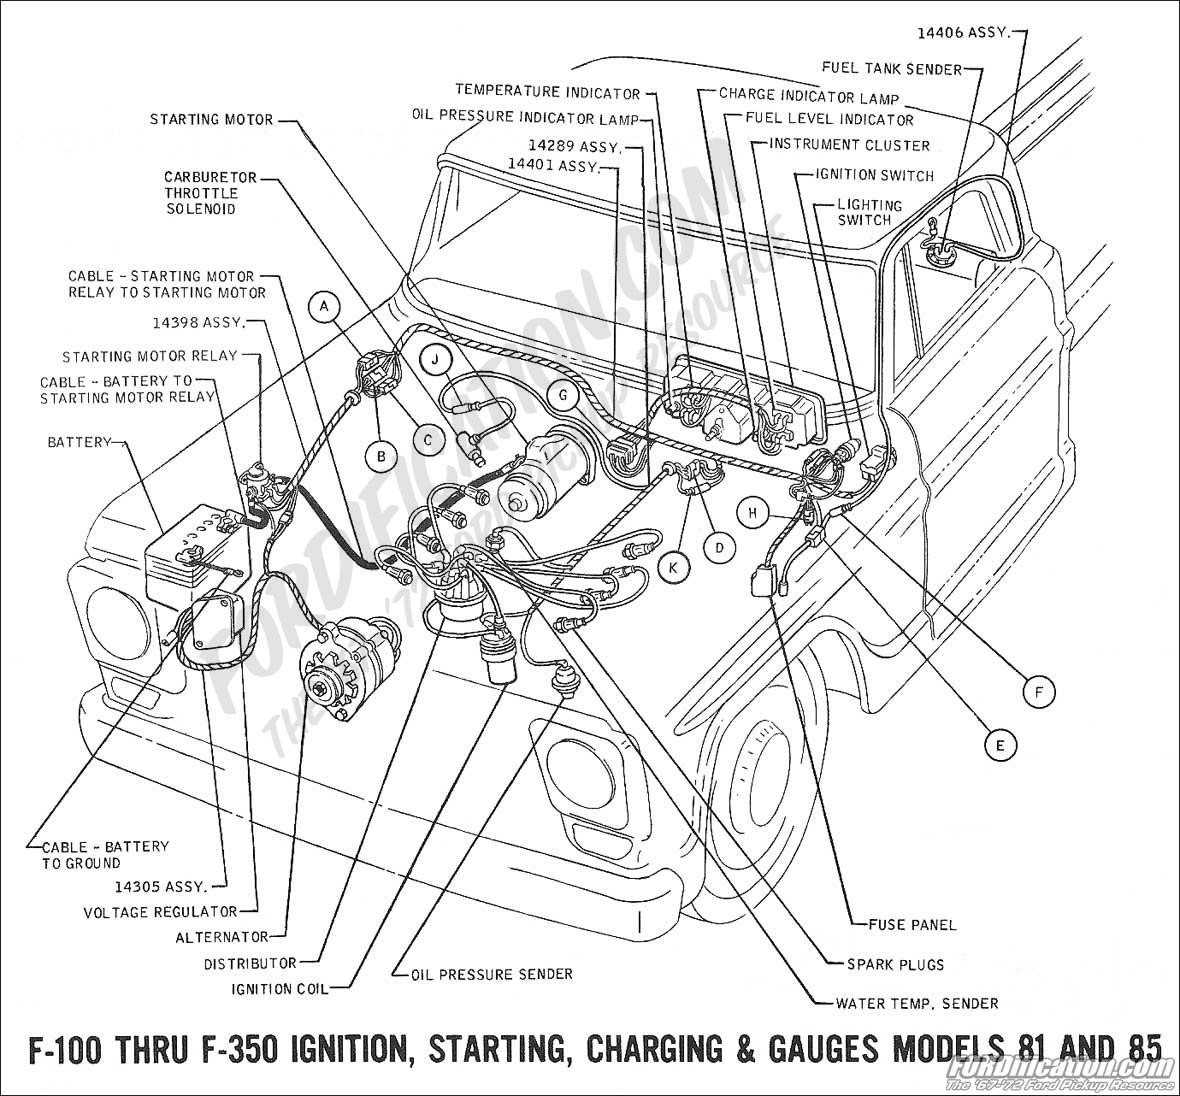 1972 ford f100 ke light wiring diagram get free image about wiring diagram